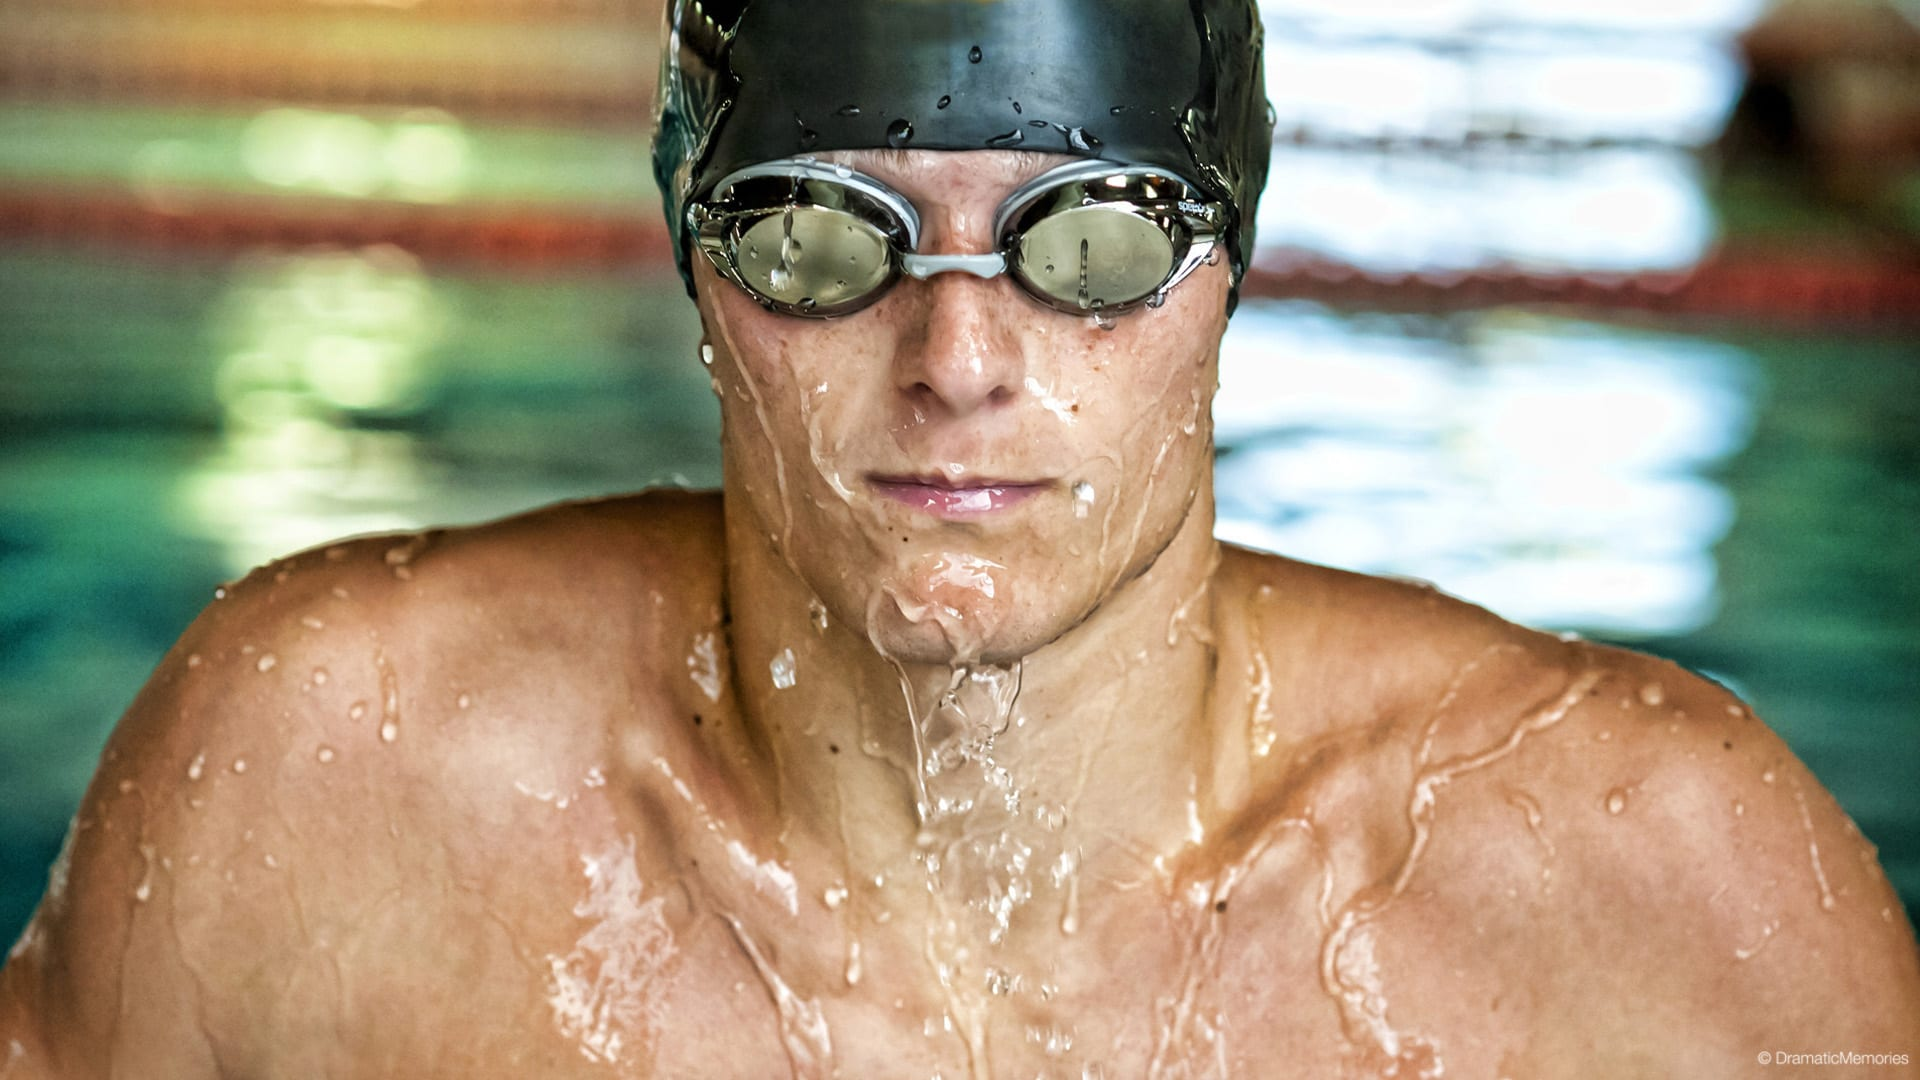 swimmer in goggles coming out of water